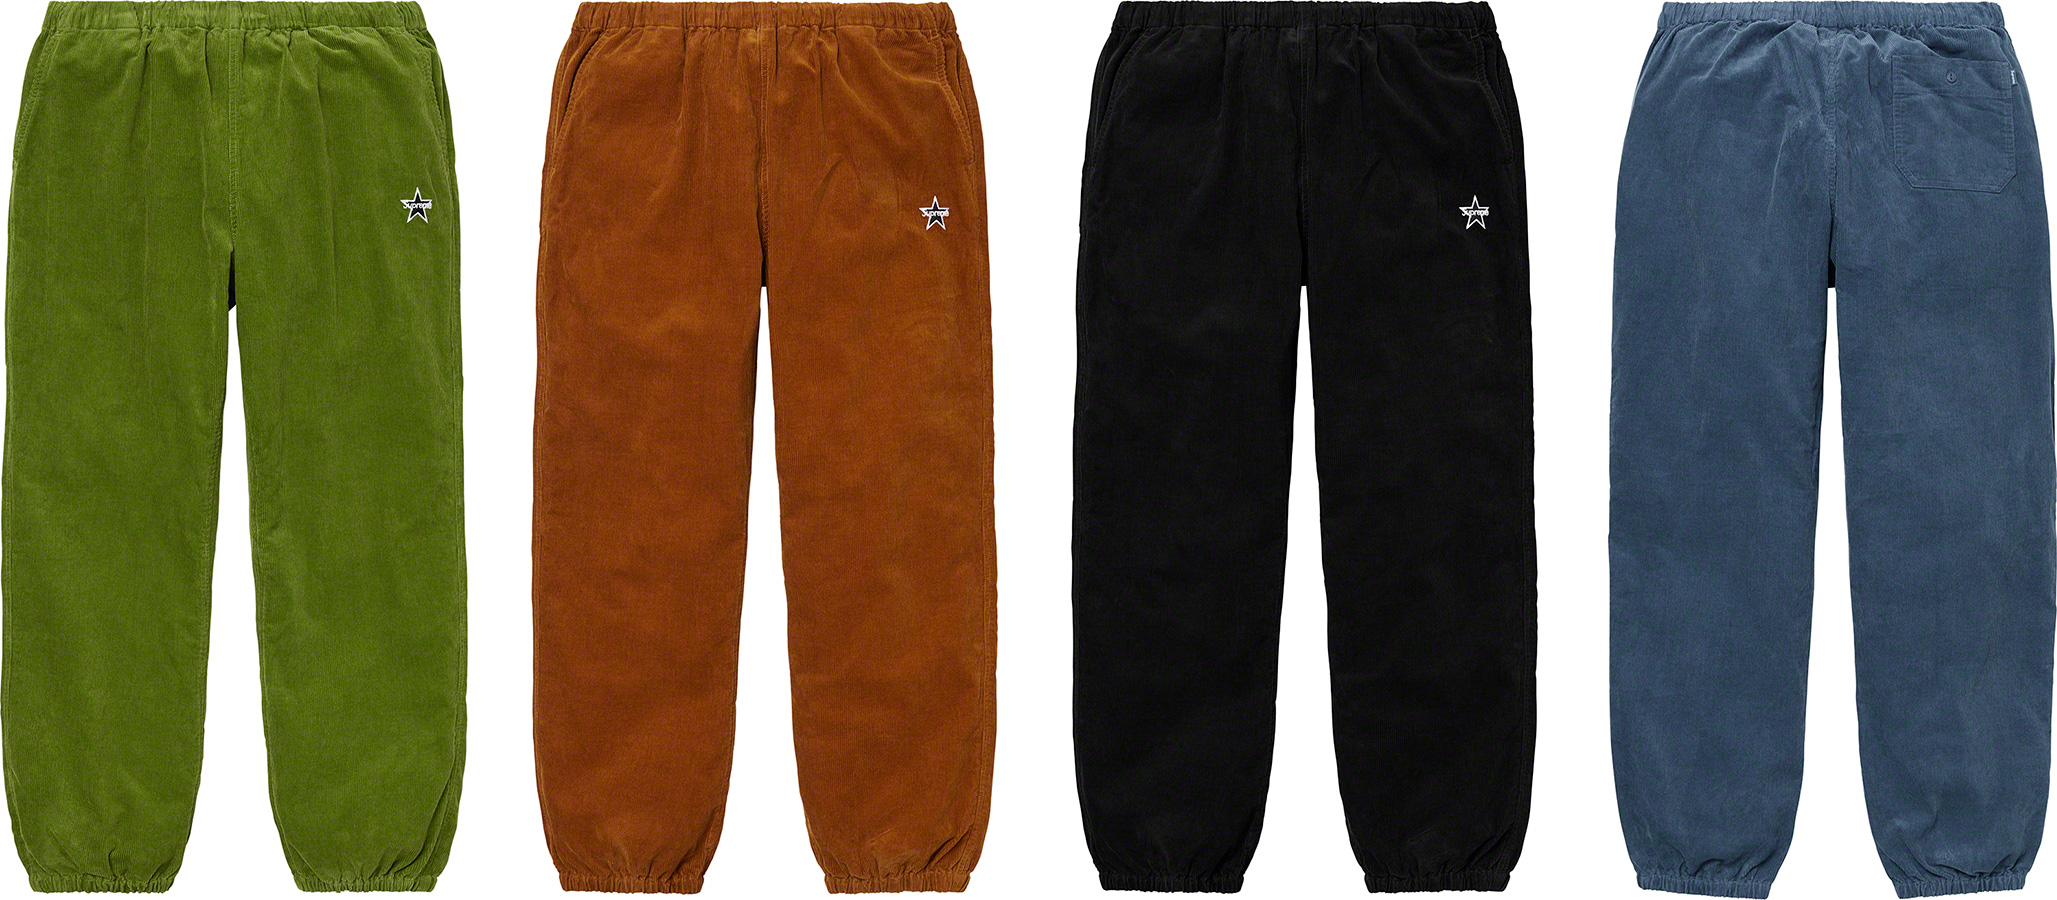 supreme-19aw-19fw-fall-winter-corduroy-skate-pant